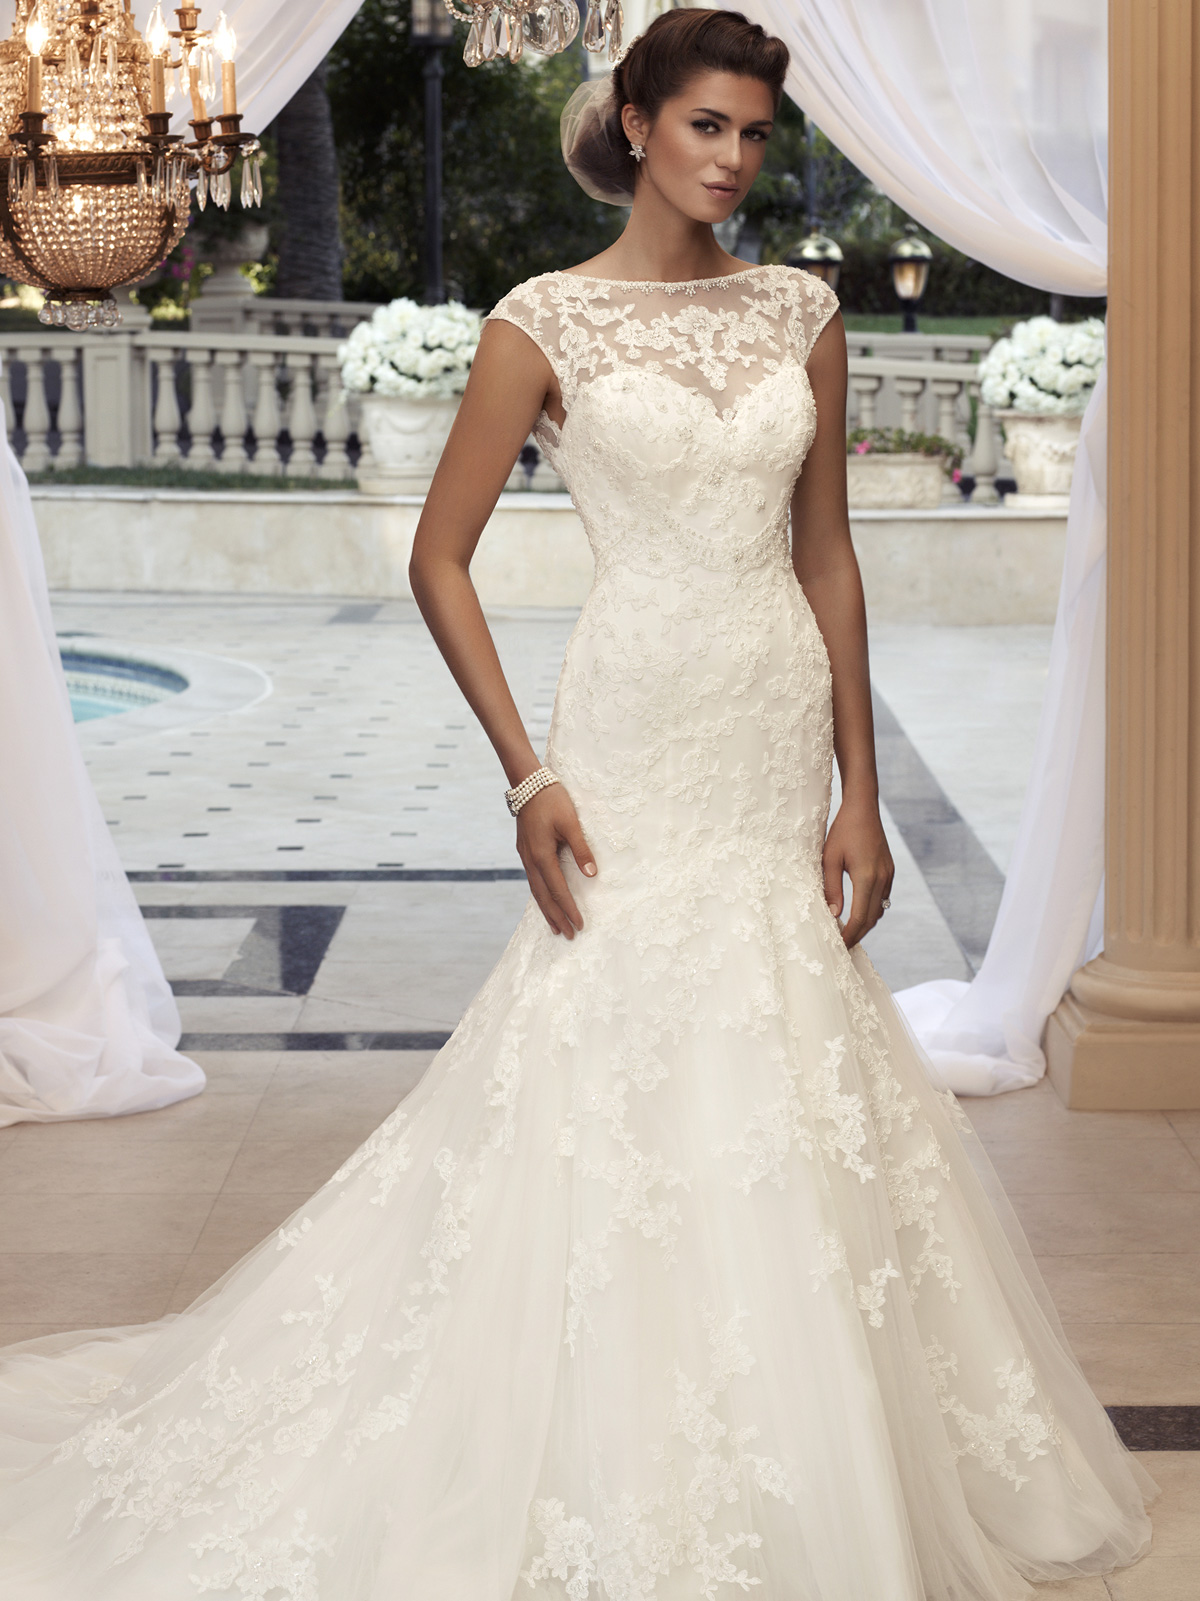 Outstanding Fit And Flare Bridal Dress By Casablanca 2110